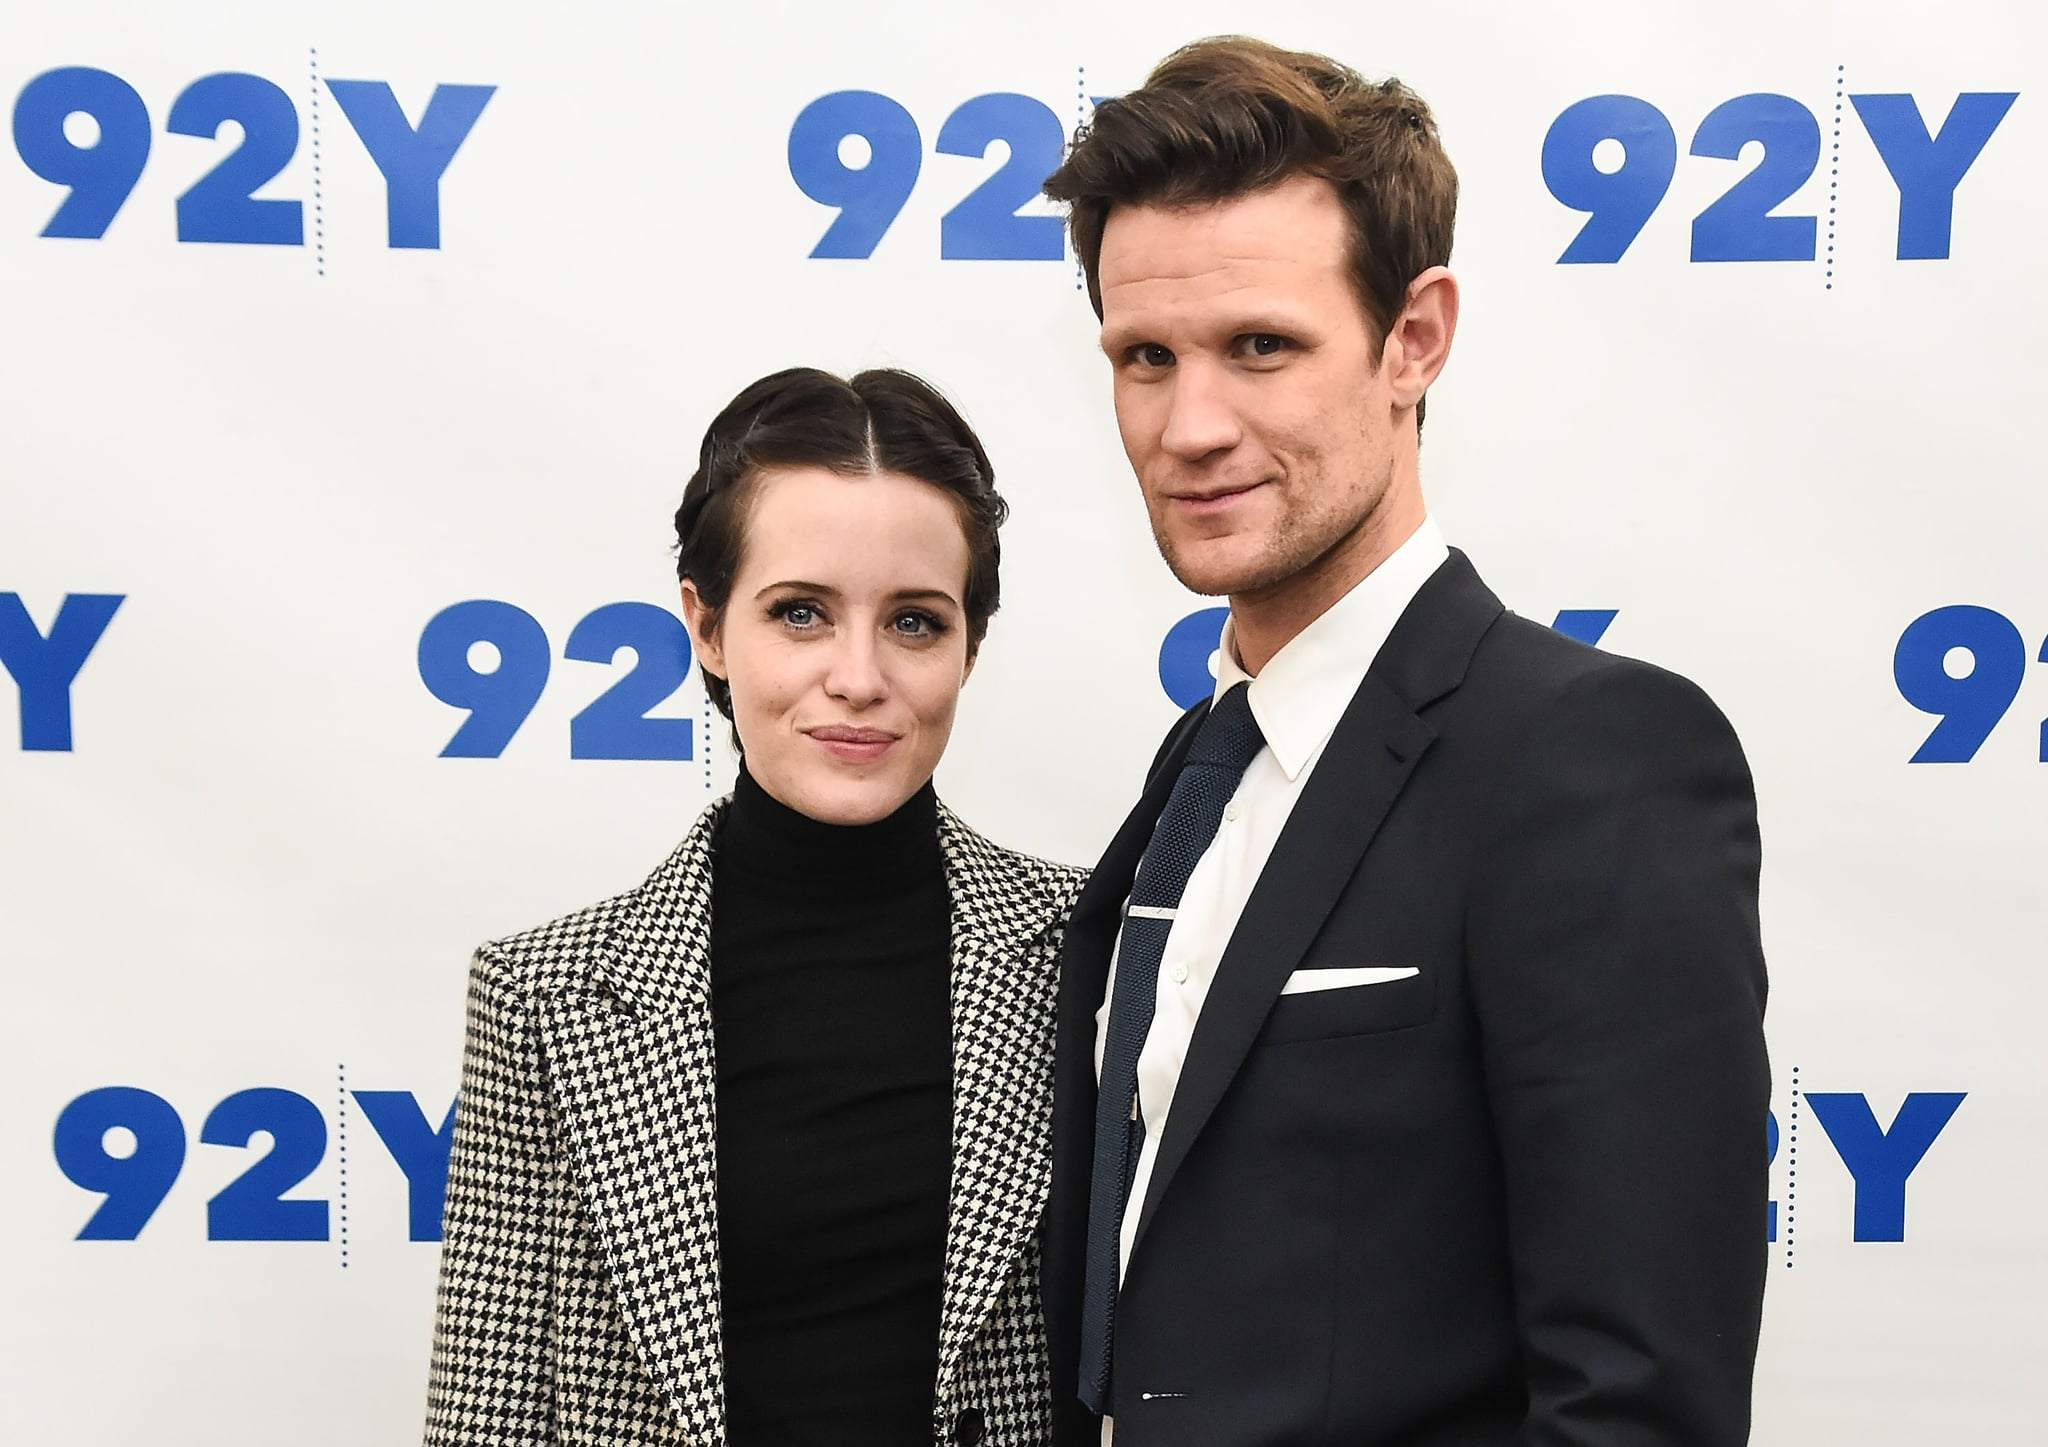 NEW YORK, NY - December 4: Claire Foy and Matt Smith attend the screening of & # 39; The Crown & # 39; at 92nd Street and December 4, 2017 in New York City. (Photo by Daniel Zuchnik / Getty Images)